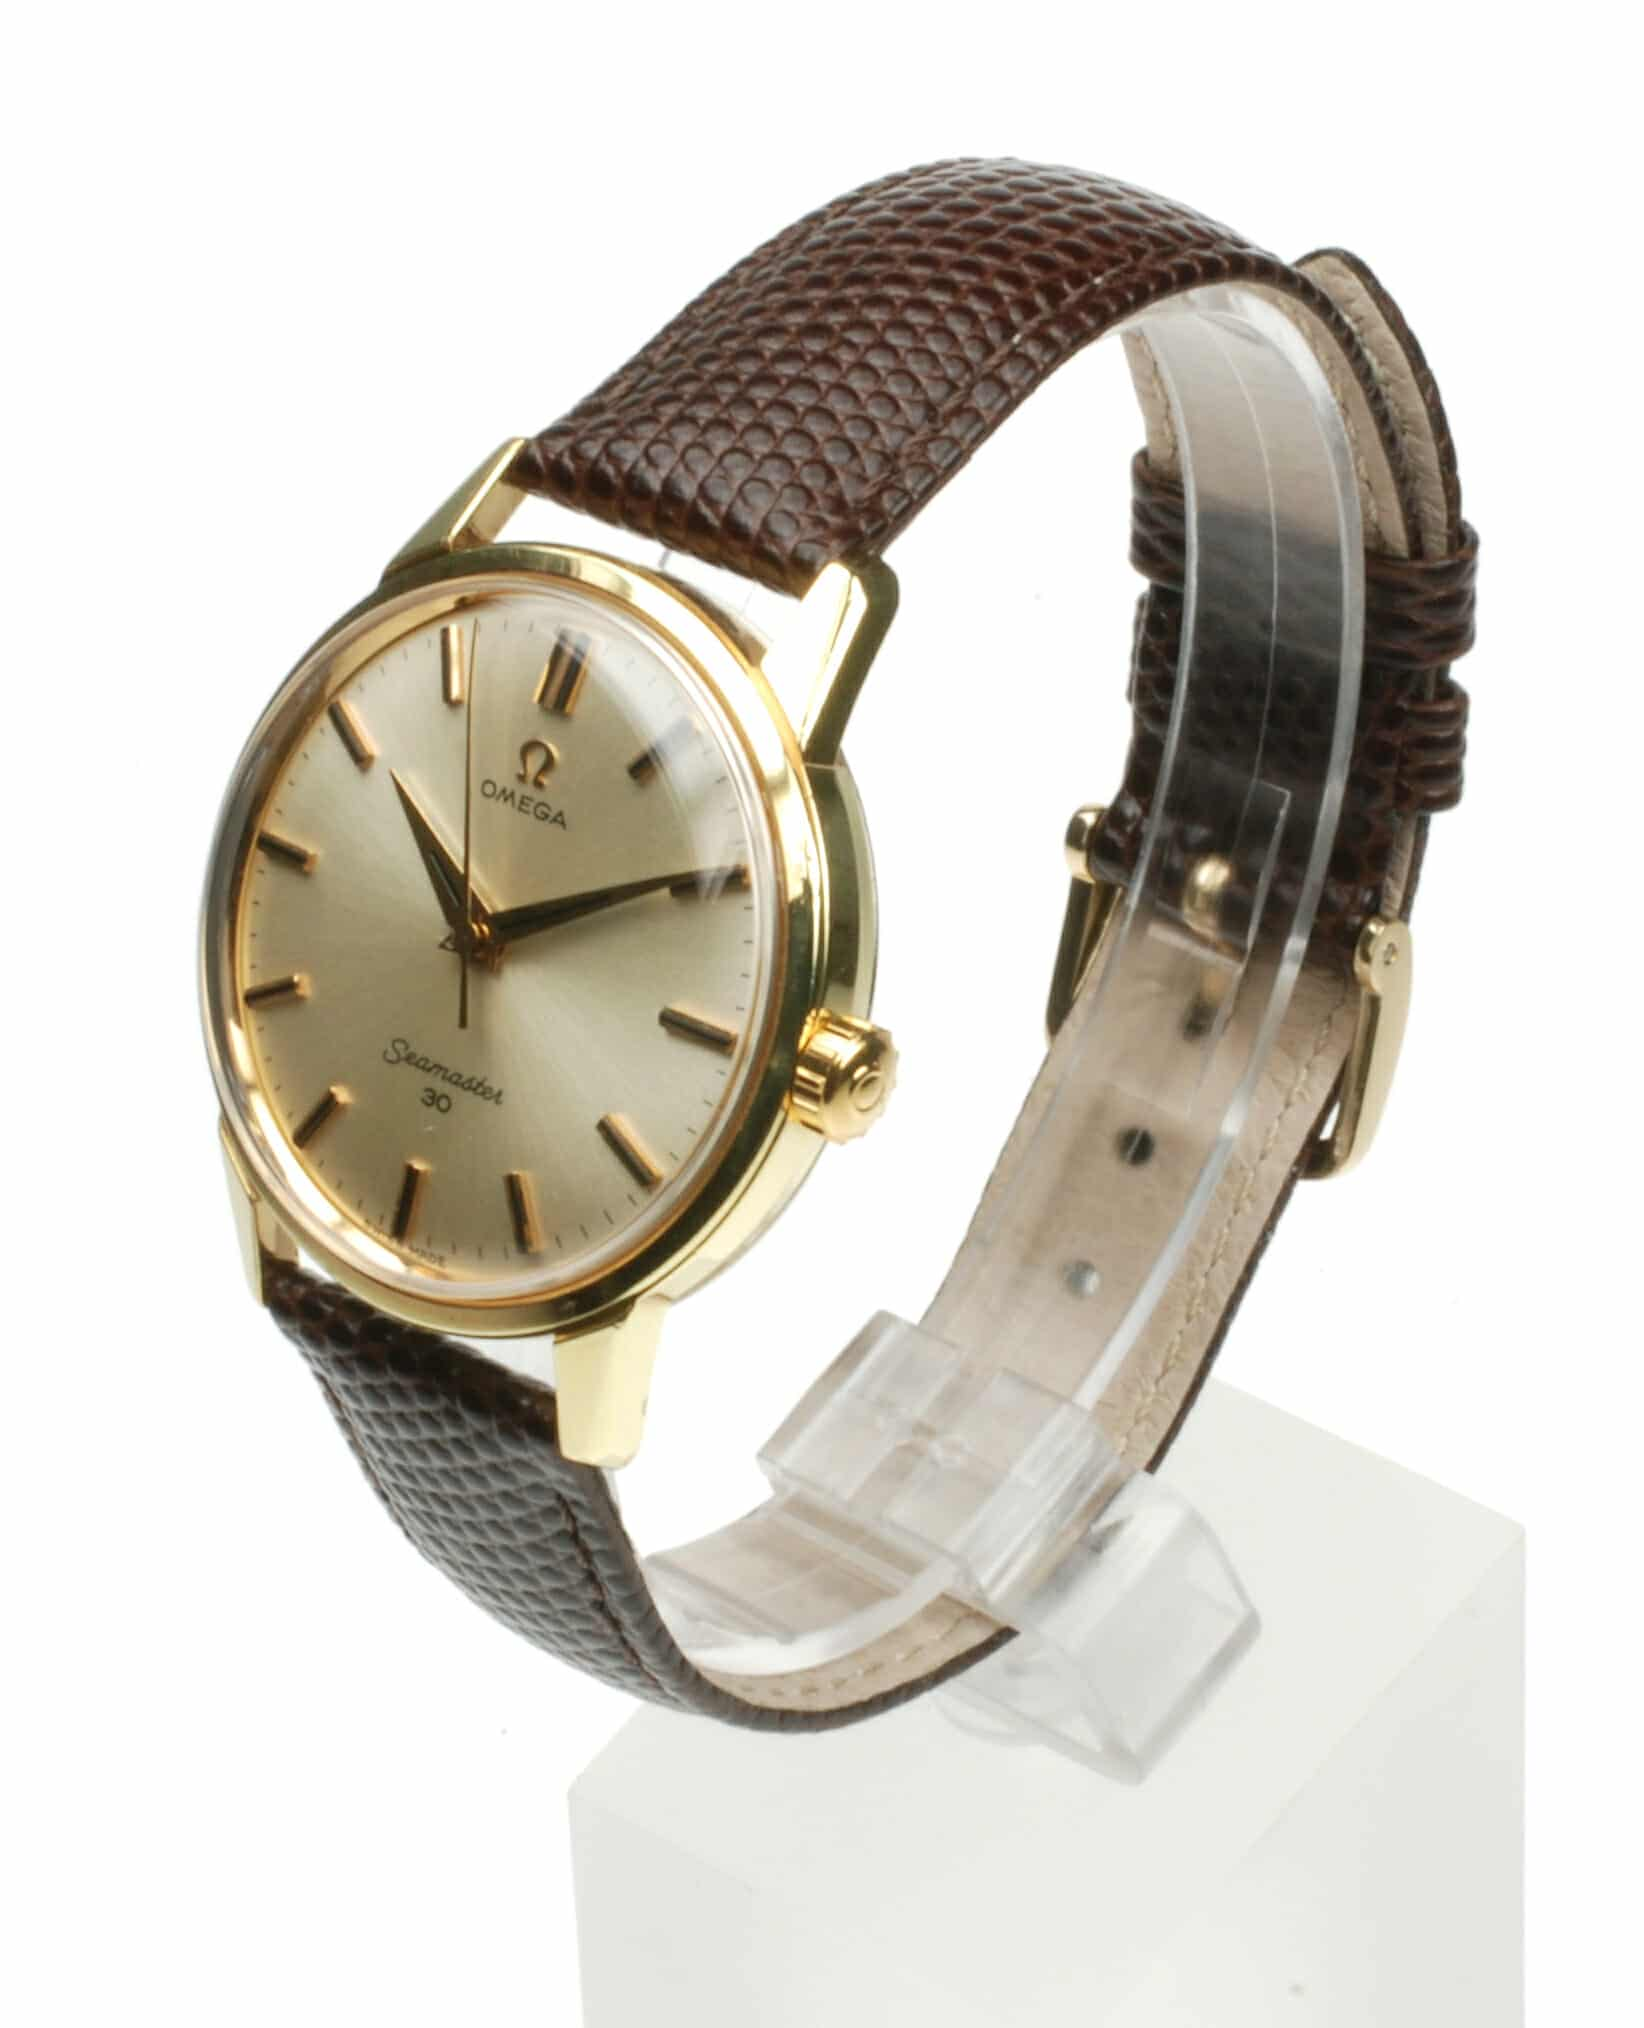 Omega Seamaster 30 135.007-63 From 1963 Pre-Owned Watch